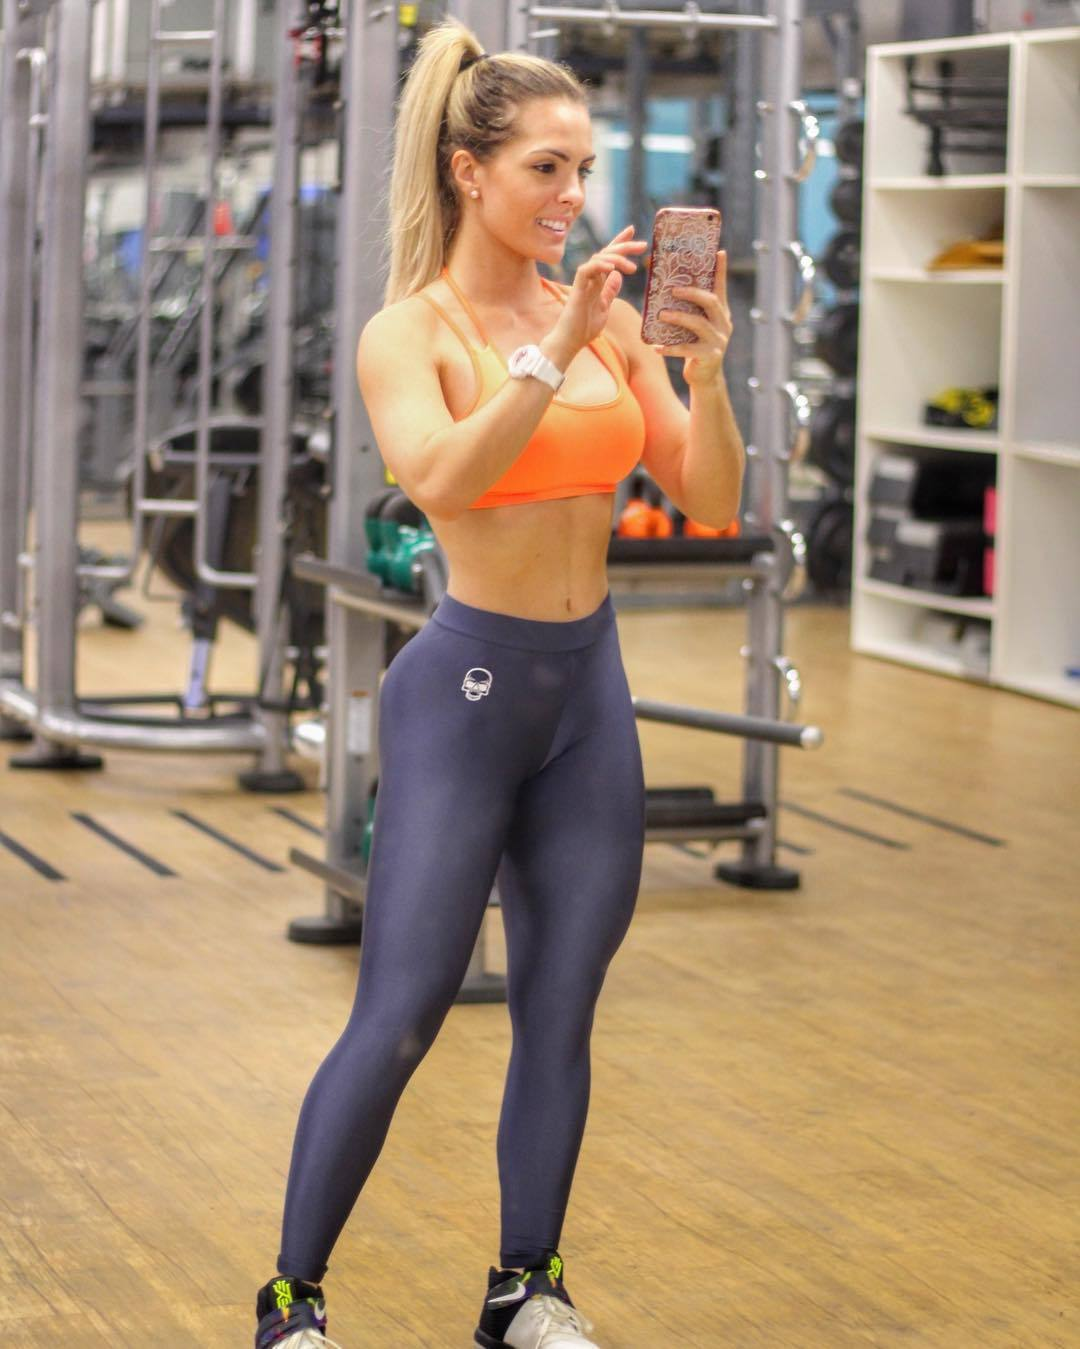 Checkout this yoga pants wearing righteous girl that we know you will adore!!!!